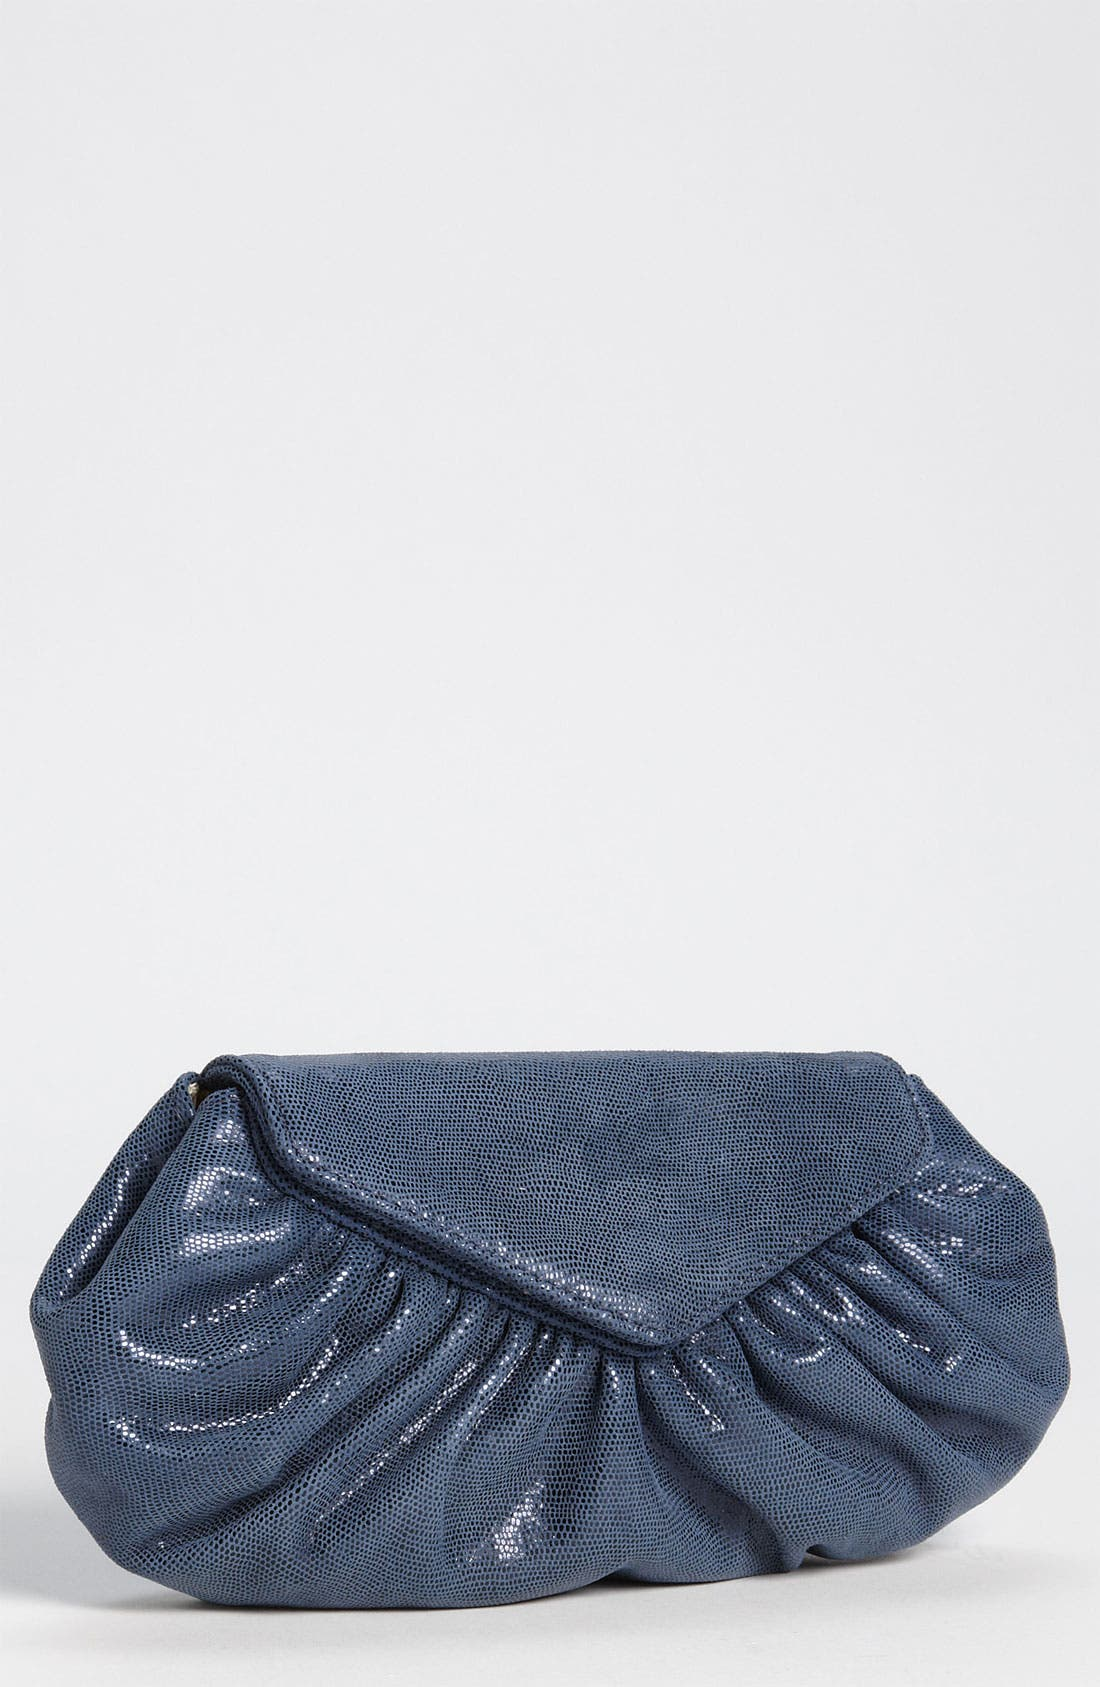 Alternate Image 1 Selected - Lauren Merkin 'Diana' Lizard Print Clutch